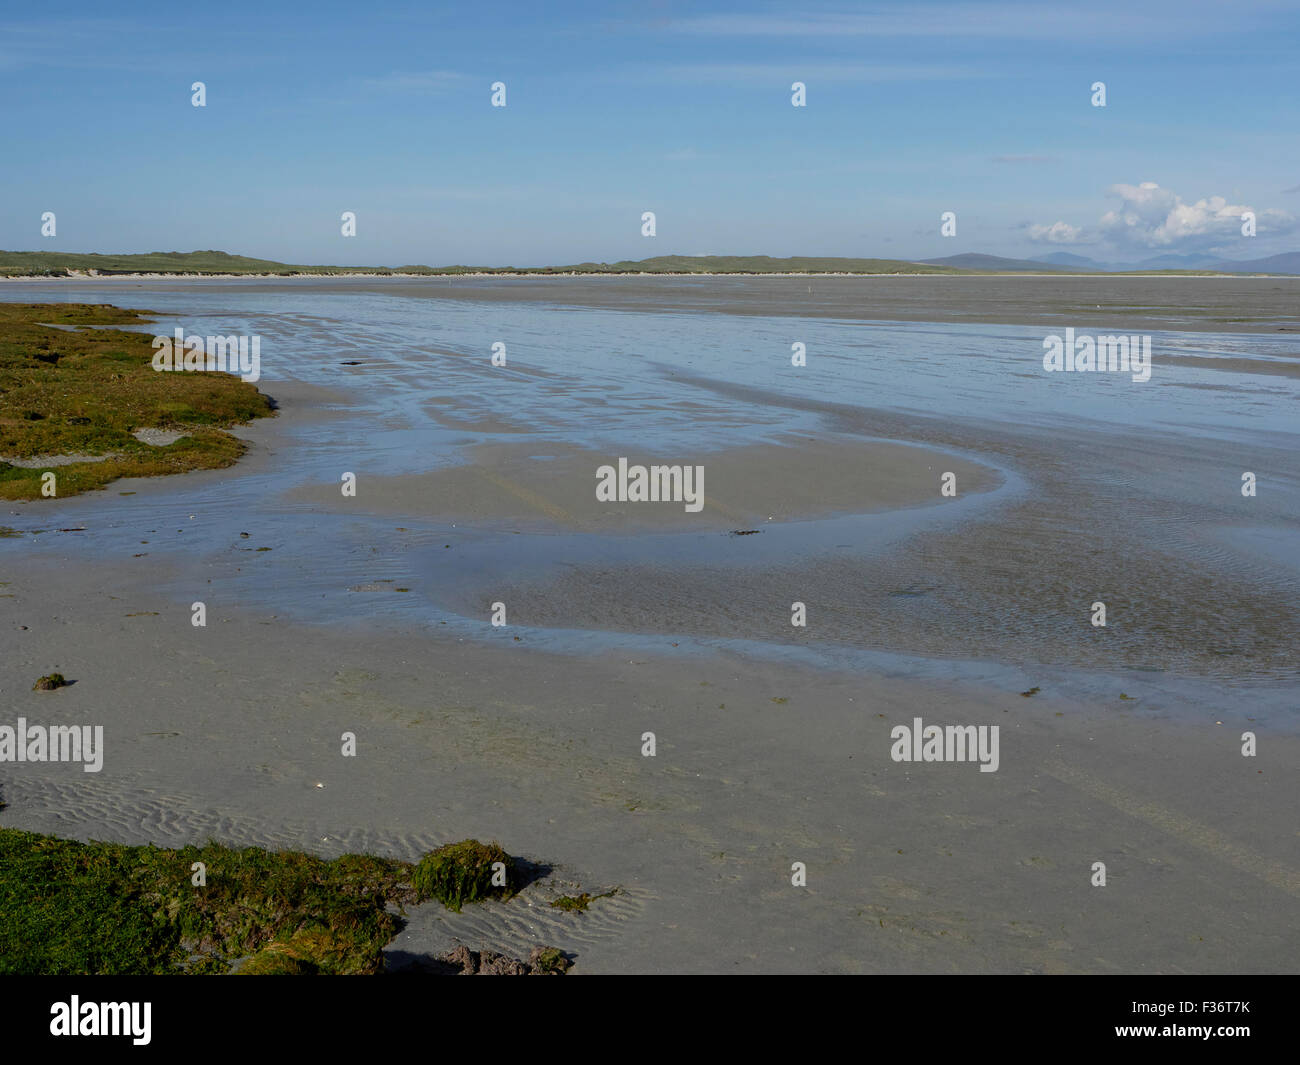 North Uist, Hebrides, September 2015 - Stock Image